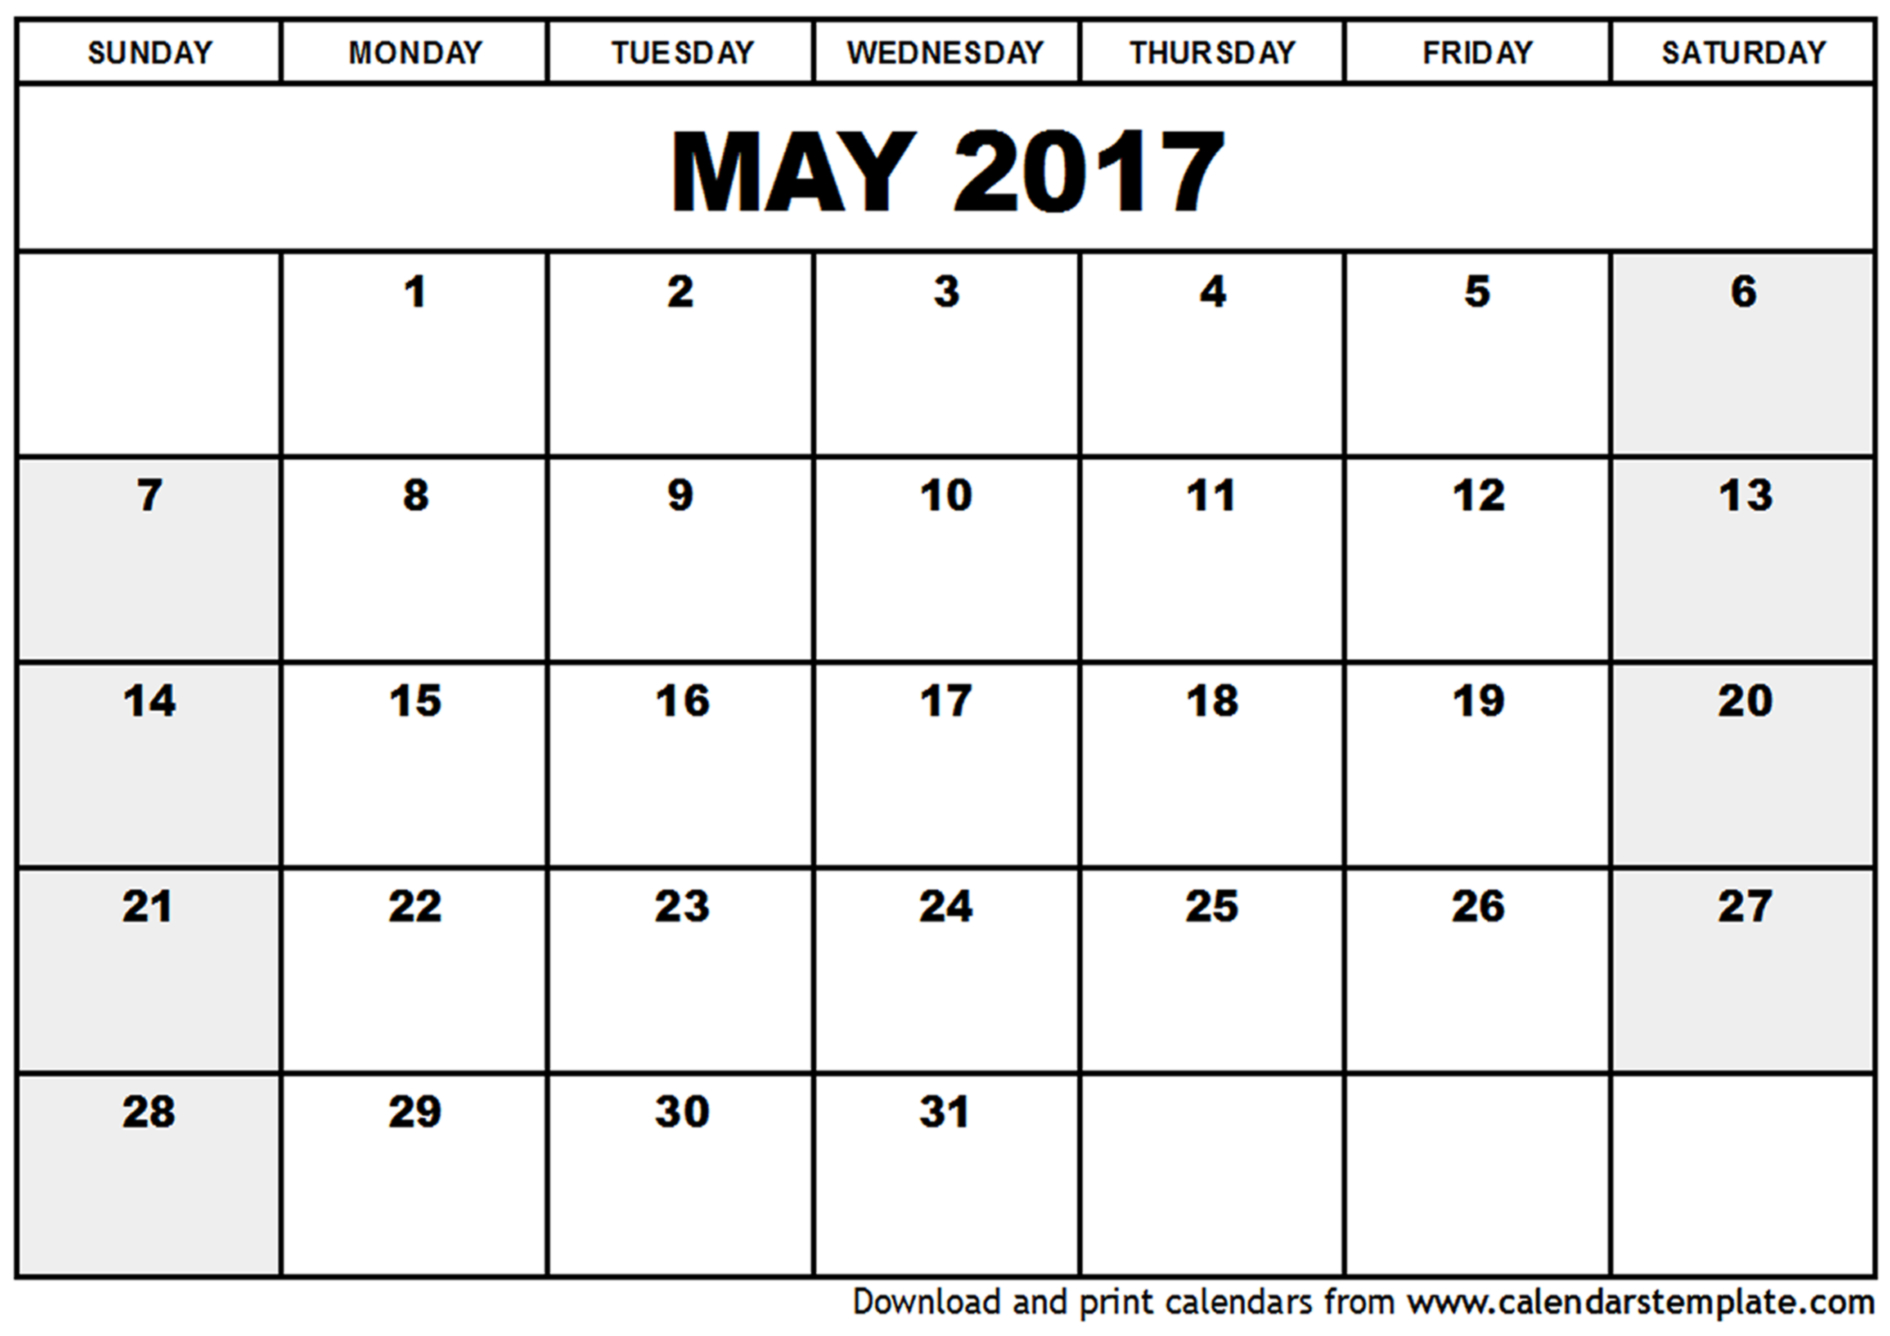 Free May 2017 Calendar Printable Templates – Webelations